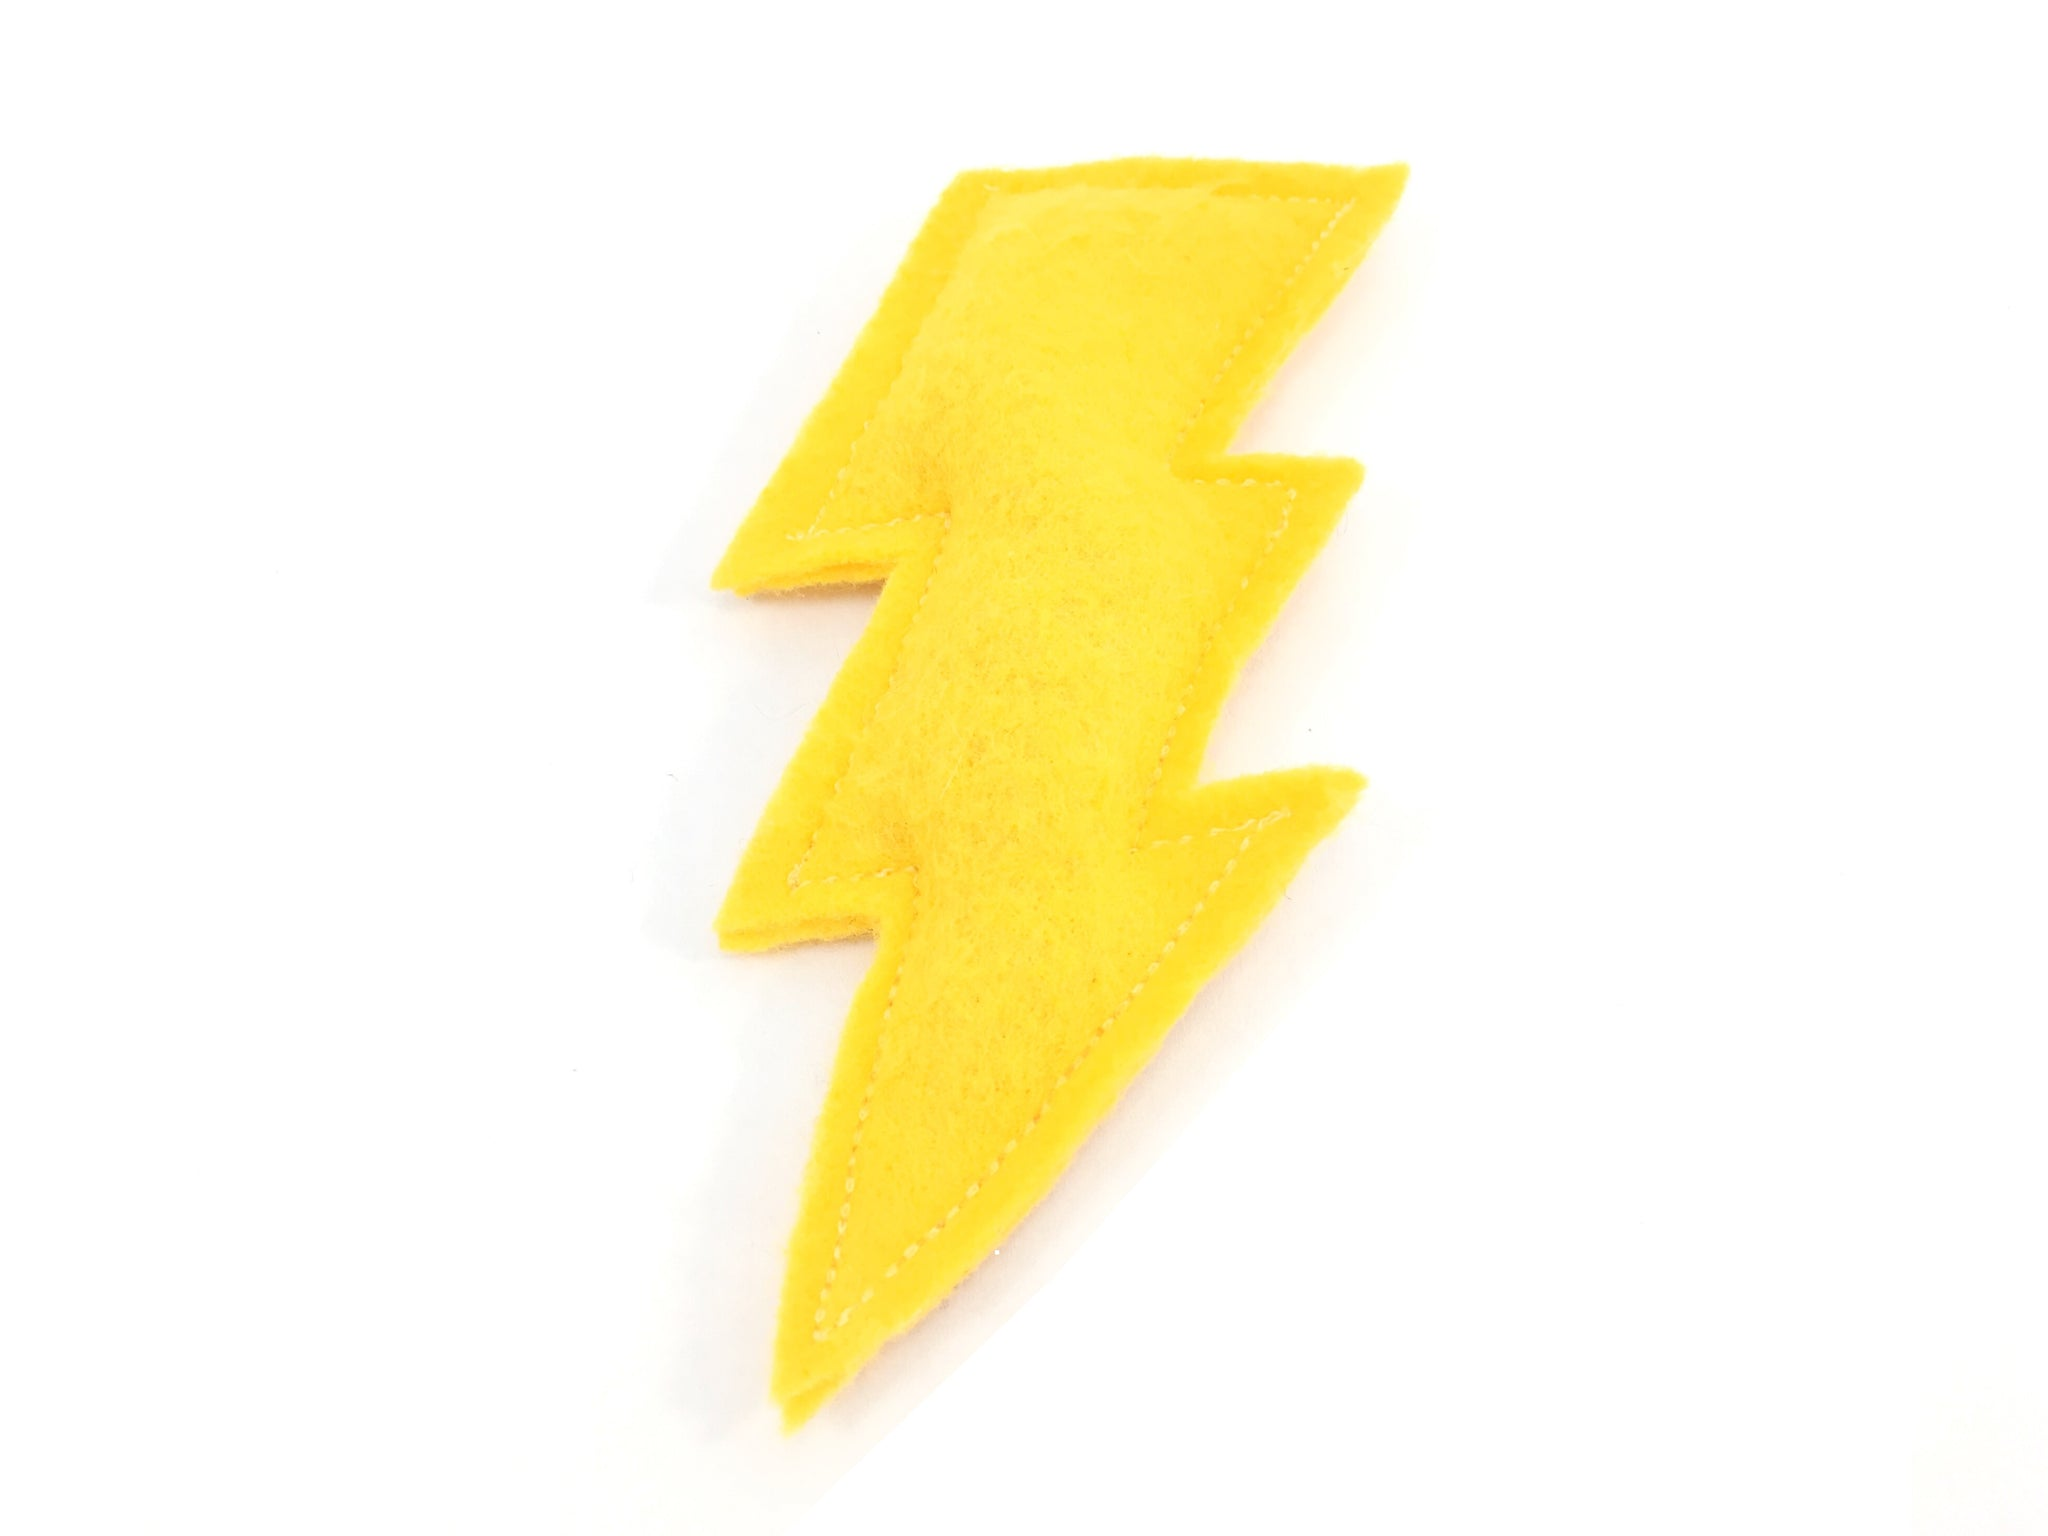 Organic catnip lightning bolt cat toy in yellow recycled vegan felt and filled with recycled PET fibre and organic catnip, eco friendly and sustainable cat toy